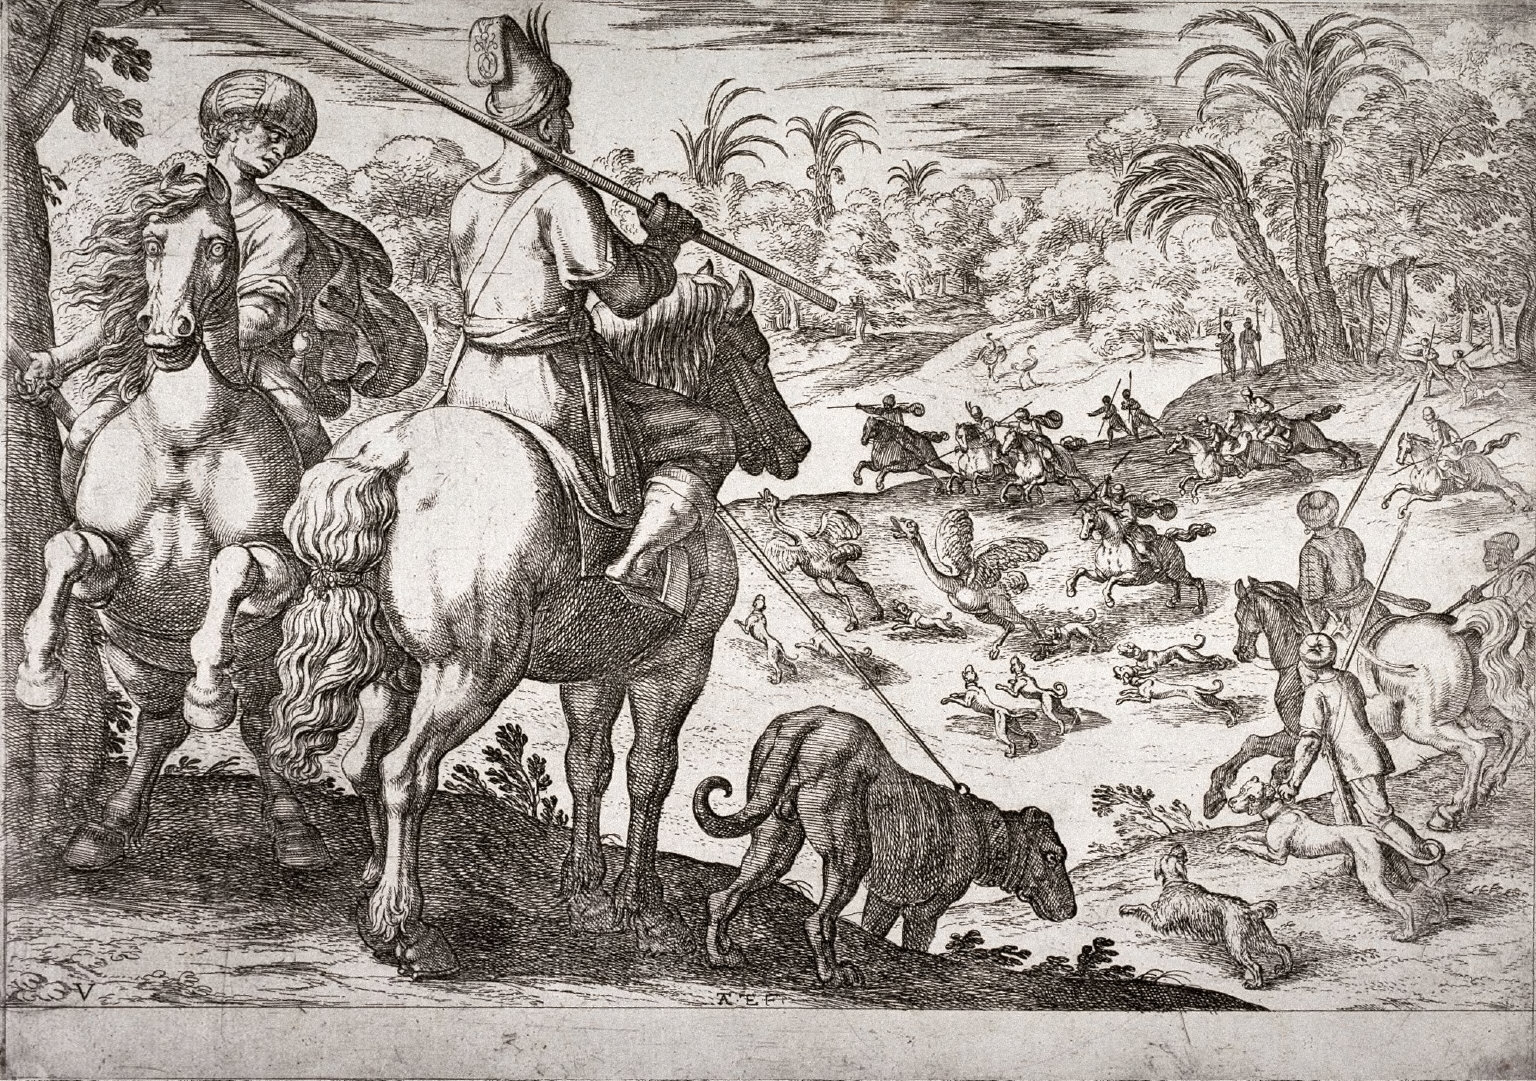 Ostrich Hunt, pl. 5 from the series Hunting Scenes VI